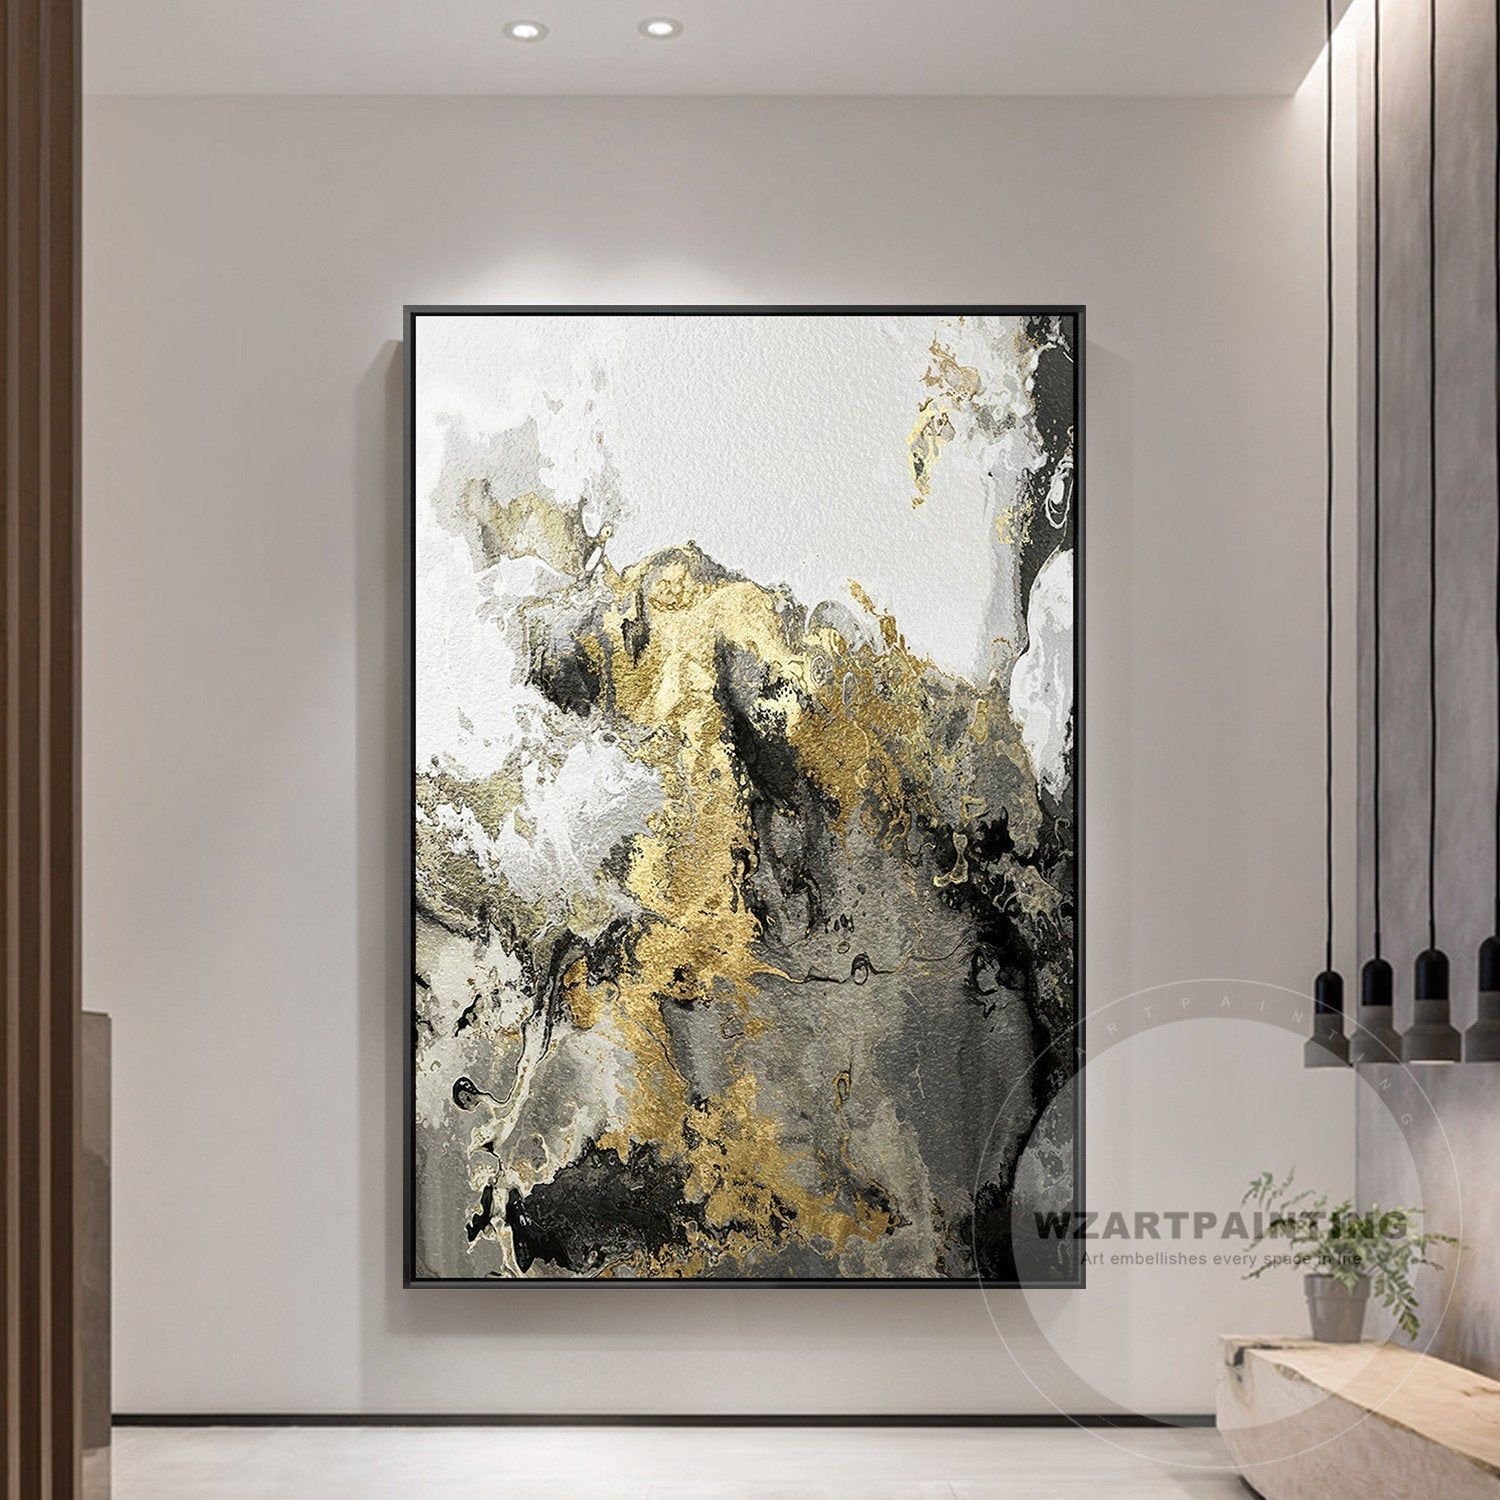 Framed Wall Art Modern Abstract Landscape Gold Gray Wall Art Etsy In 2020 Grey Wall Art Etsy Wall Art Wall Art Pictures